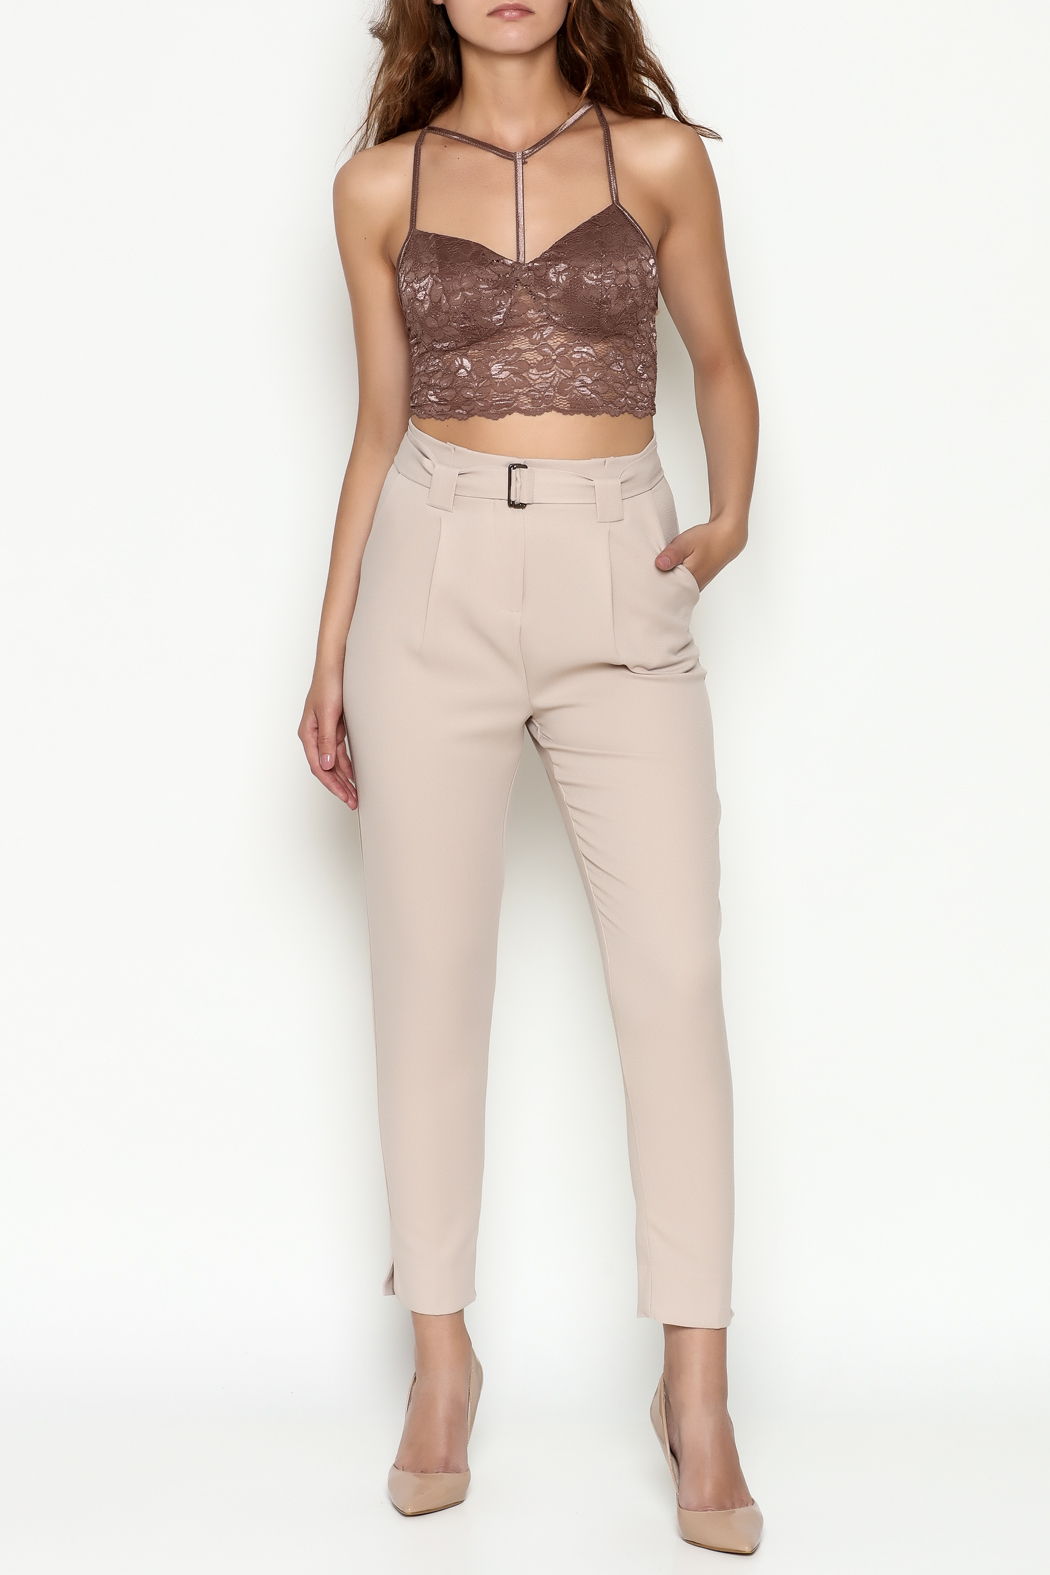 Bozzolo Lace Strap Bralette - Side Cropped Image